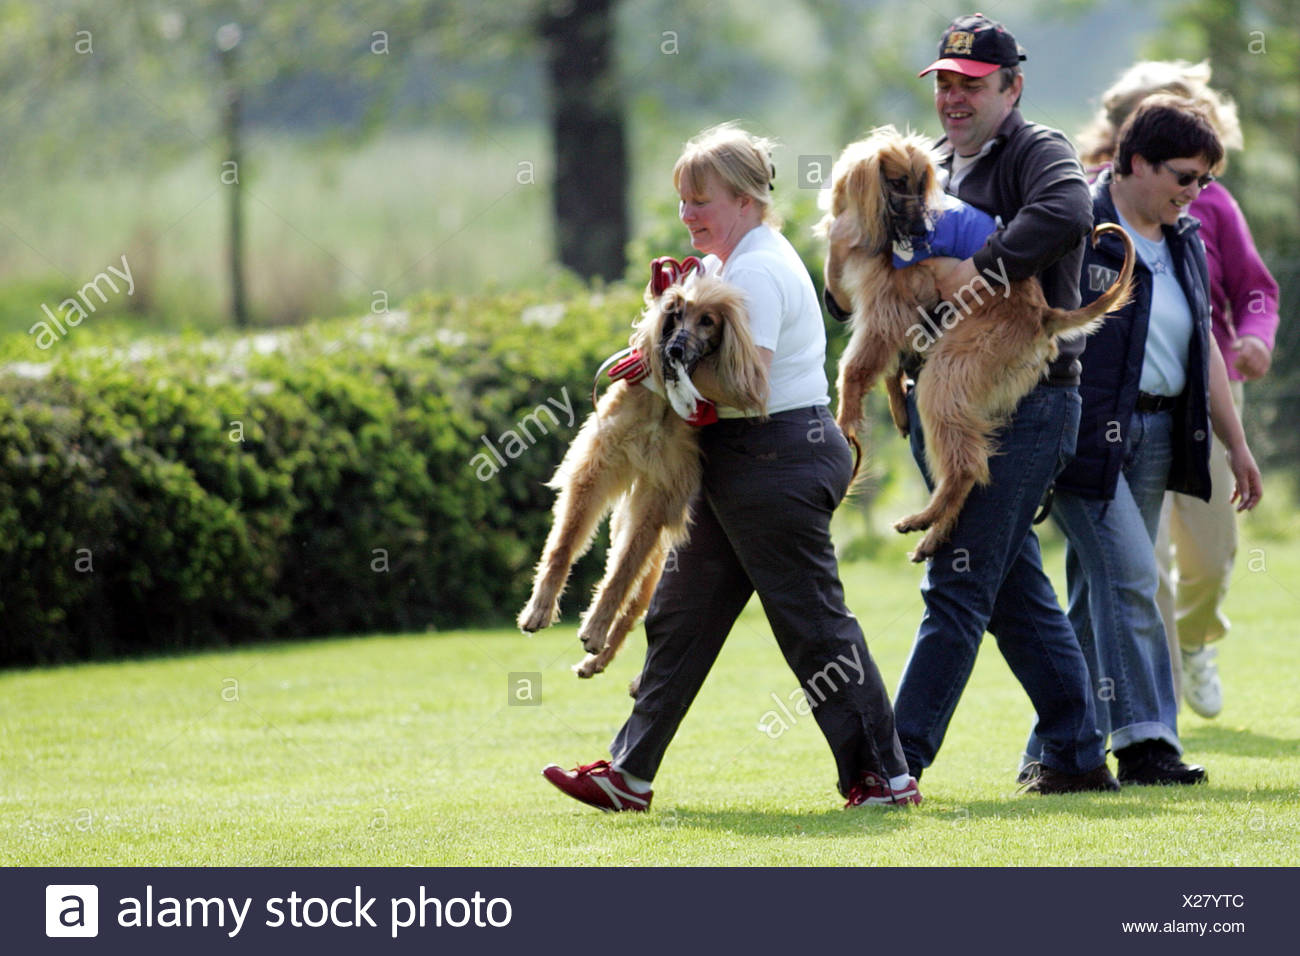 Afghanistan Hound, Afghan Hound (Canis lupus f. familiaris), bearing up after the race to avoid biting, Germany Stock Photo